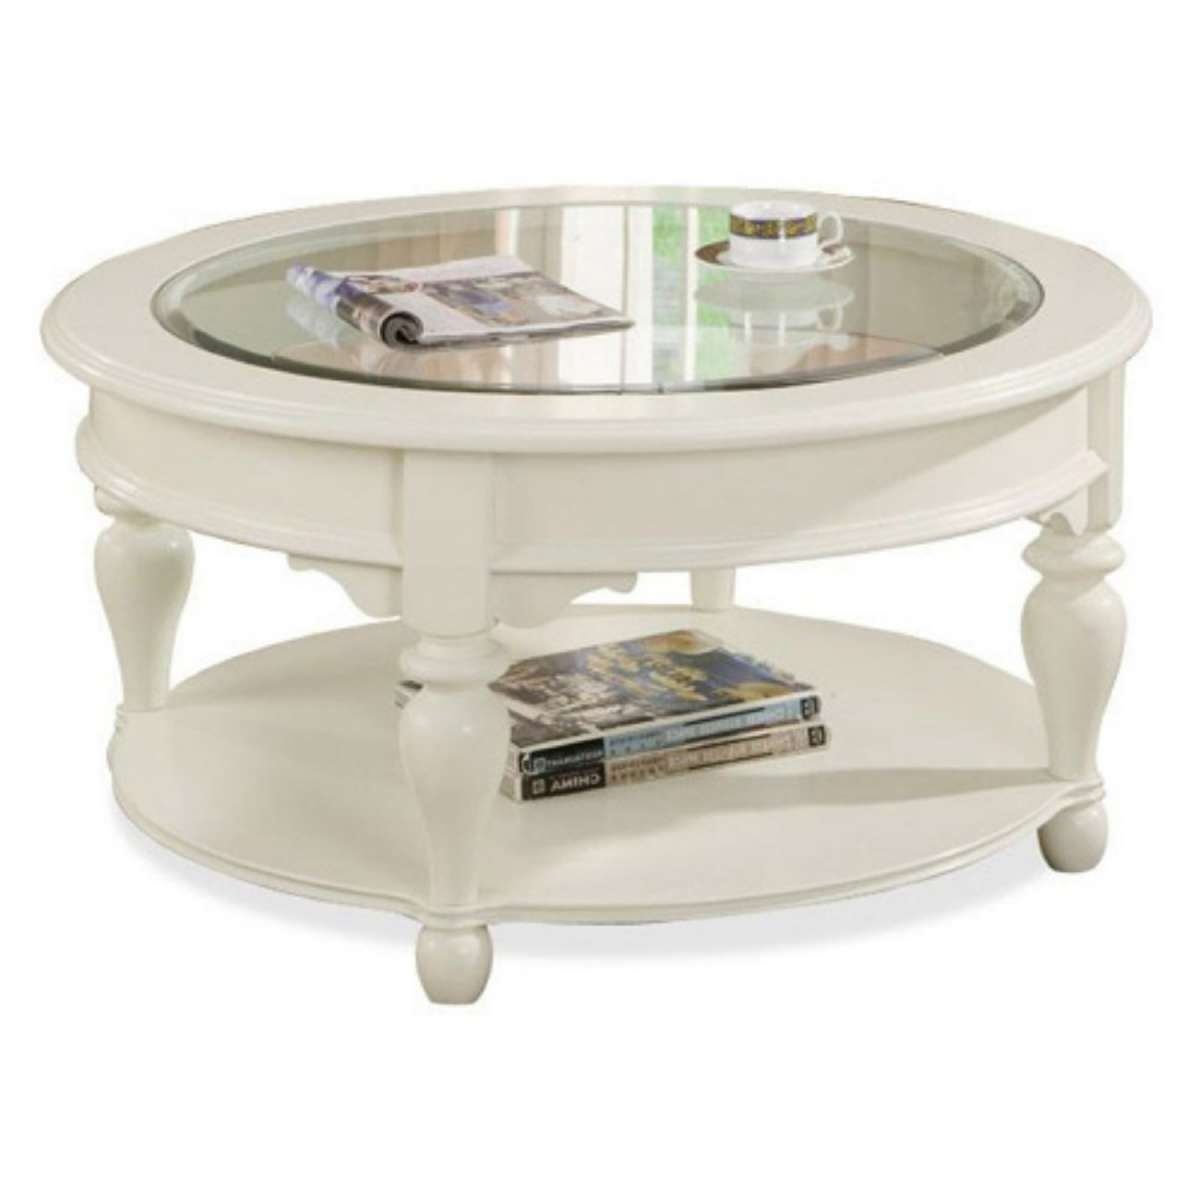 Coffee Table : Round Coffee Table Set In Wood Glass Sets Oak With Recent White Wood And Glass Coffee Tables (View 2 of 20)